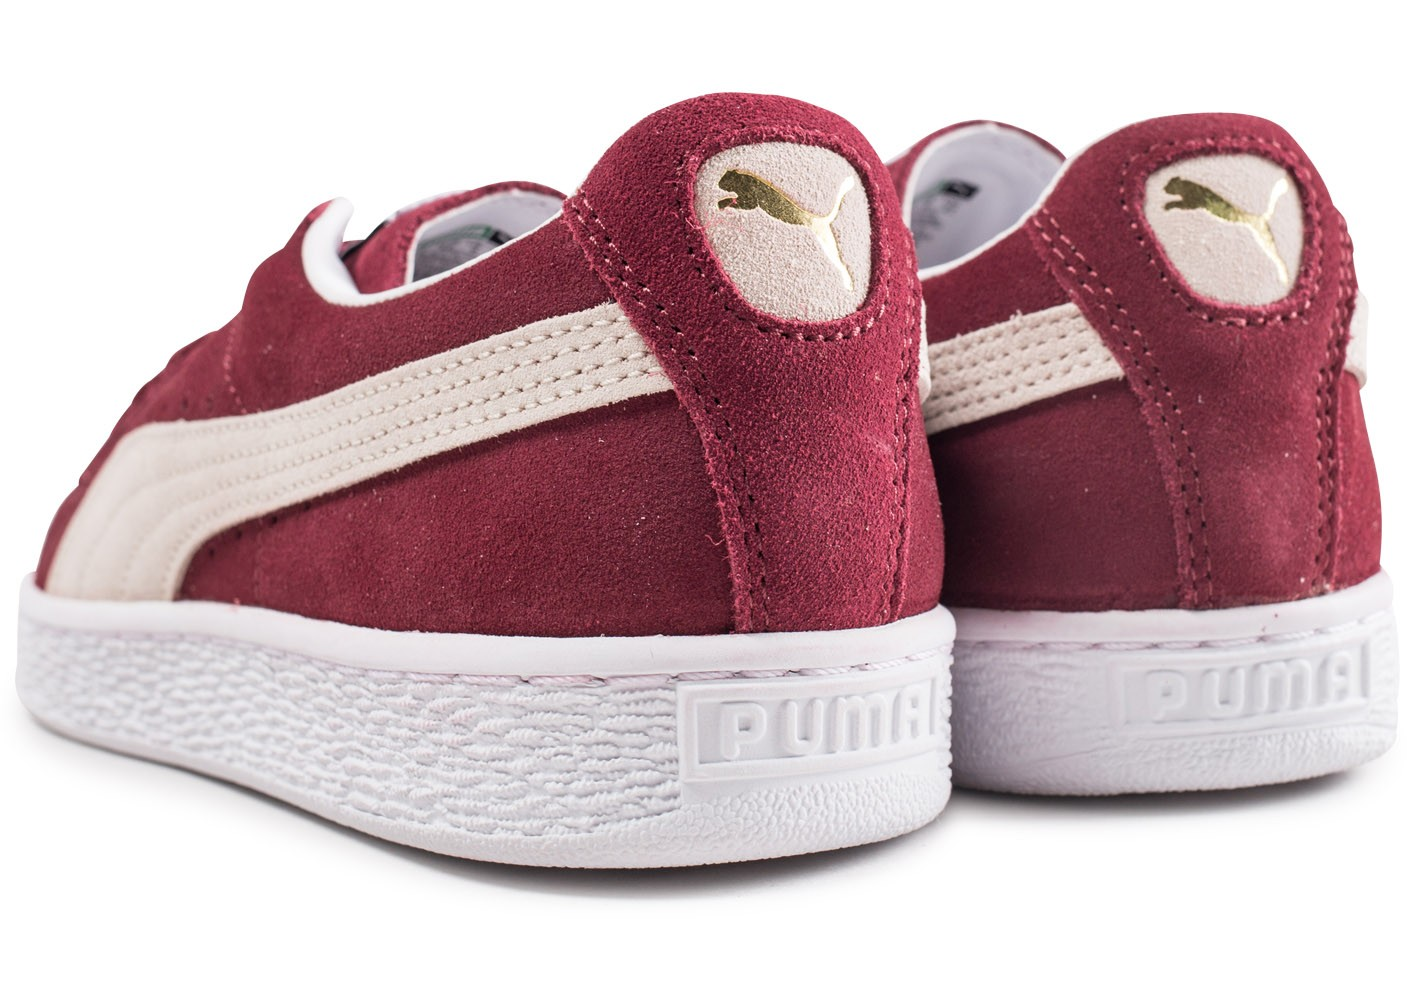 Classic Chaussures Homme Puma Bordeaux Baskets Chausport Suede O0wyvNm8n